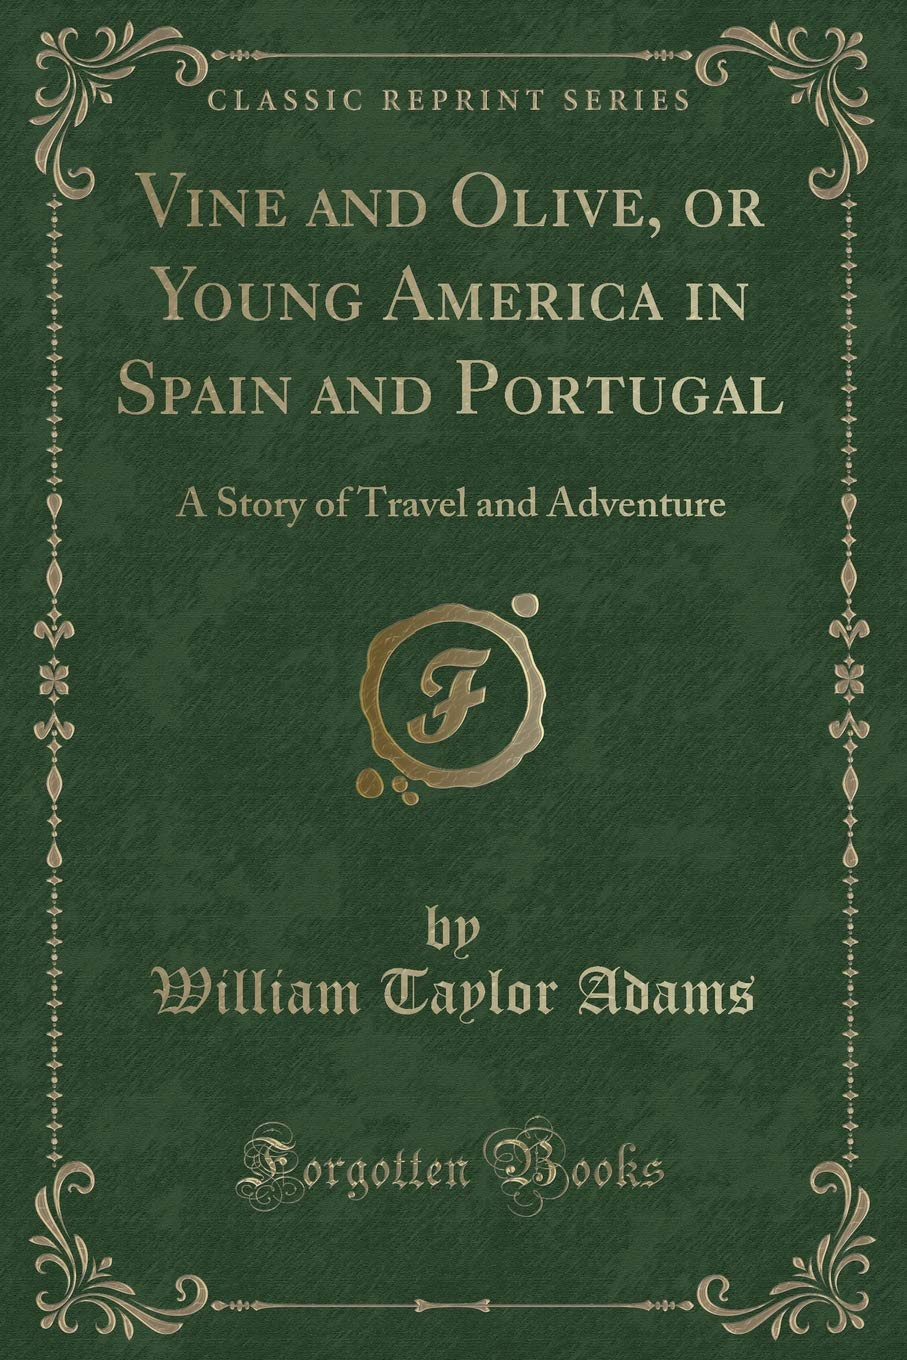 Vine and Olive, or Young America in Spain and Portugal: A Story of Travel and Adventure Classic Reprint: Amazon.es: William Taylor Adams: Libros en idiomas ...